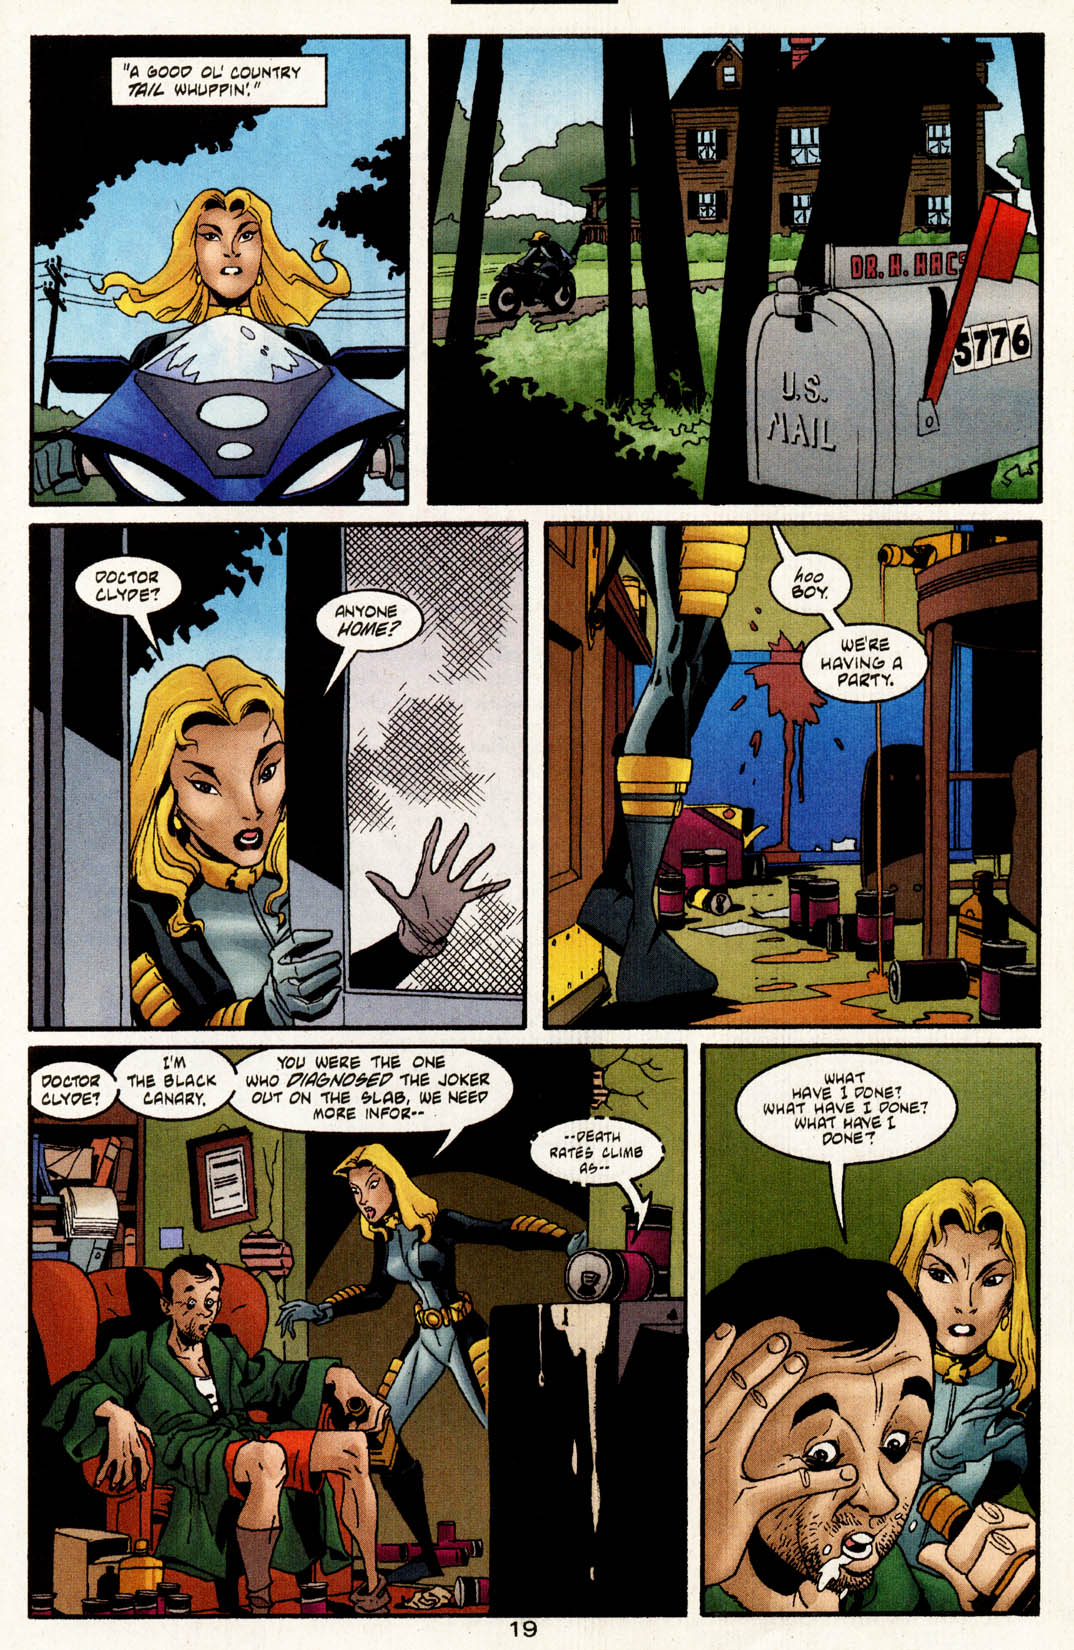 JokerLastLaughBk04of06-19BlackCanary.jpg